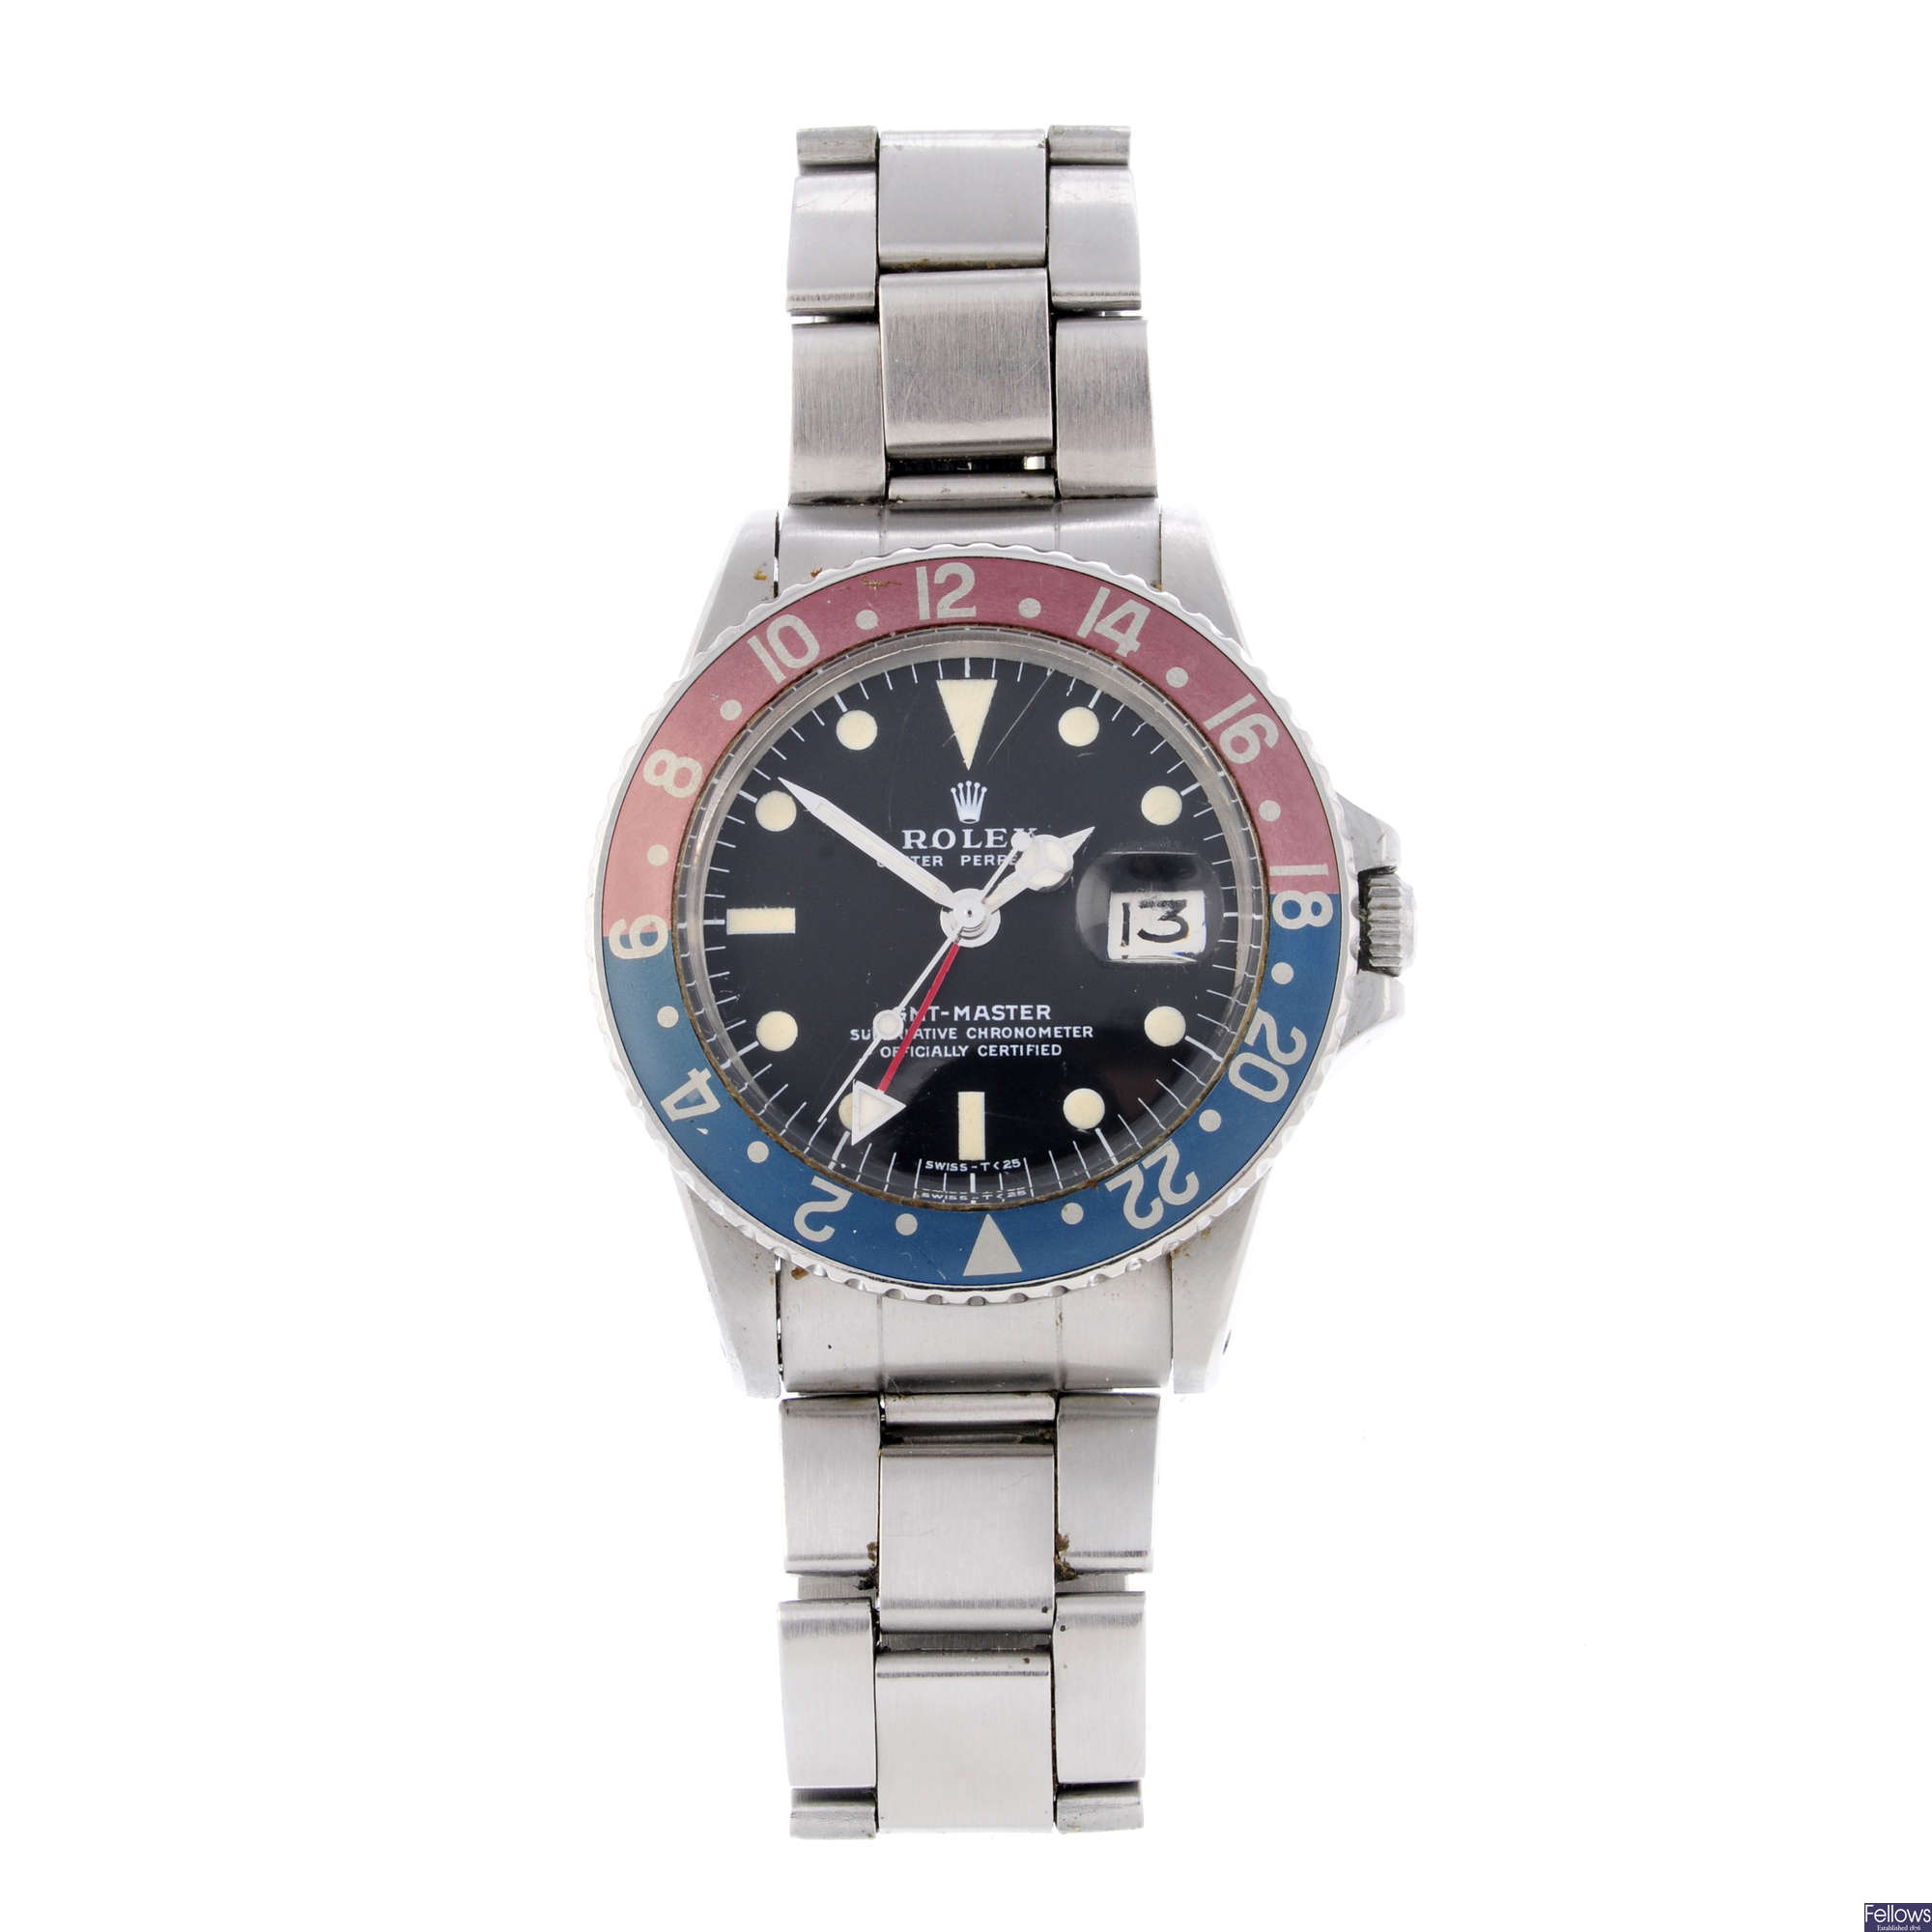 Stainless steel Rolex Oyster Perpetual GMT-Master bracelet watch